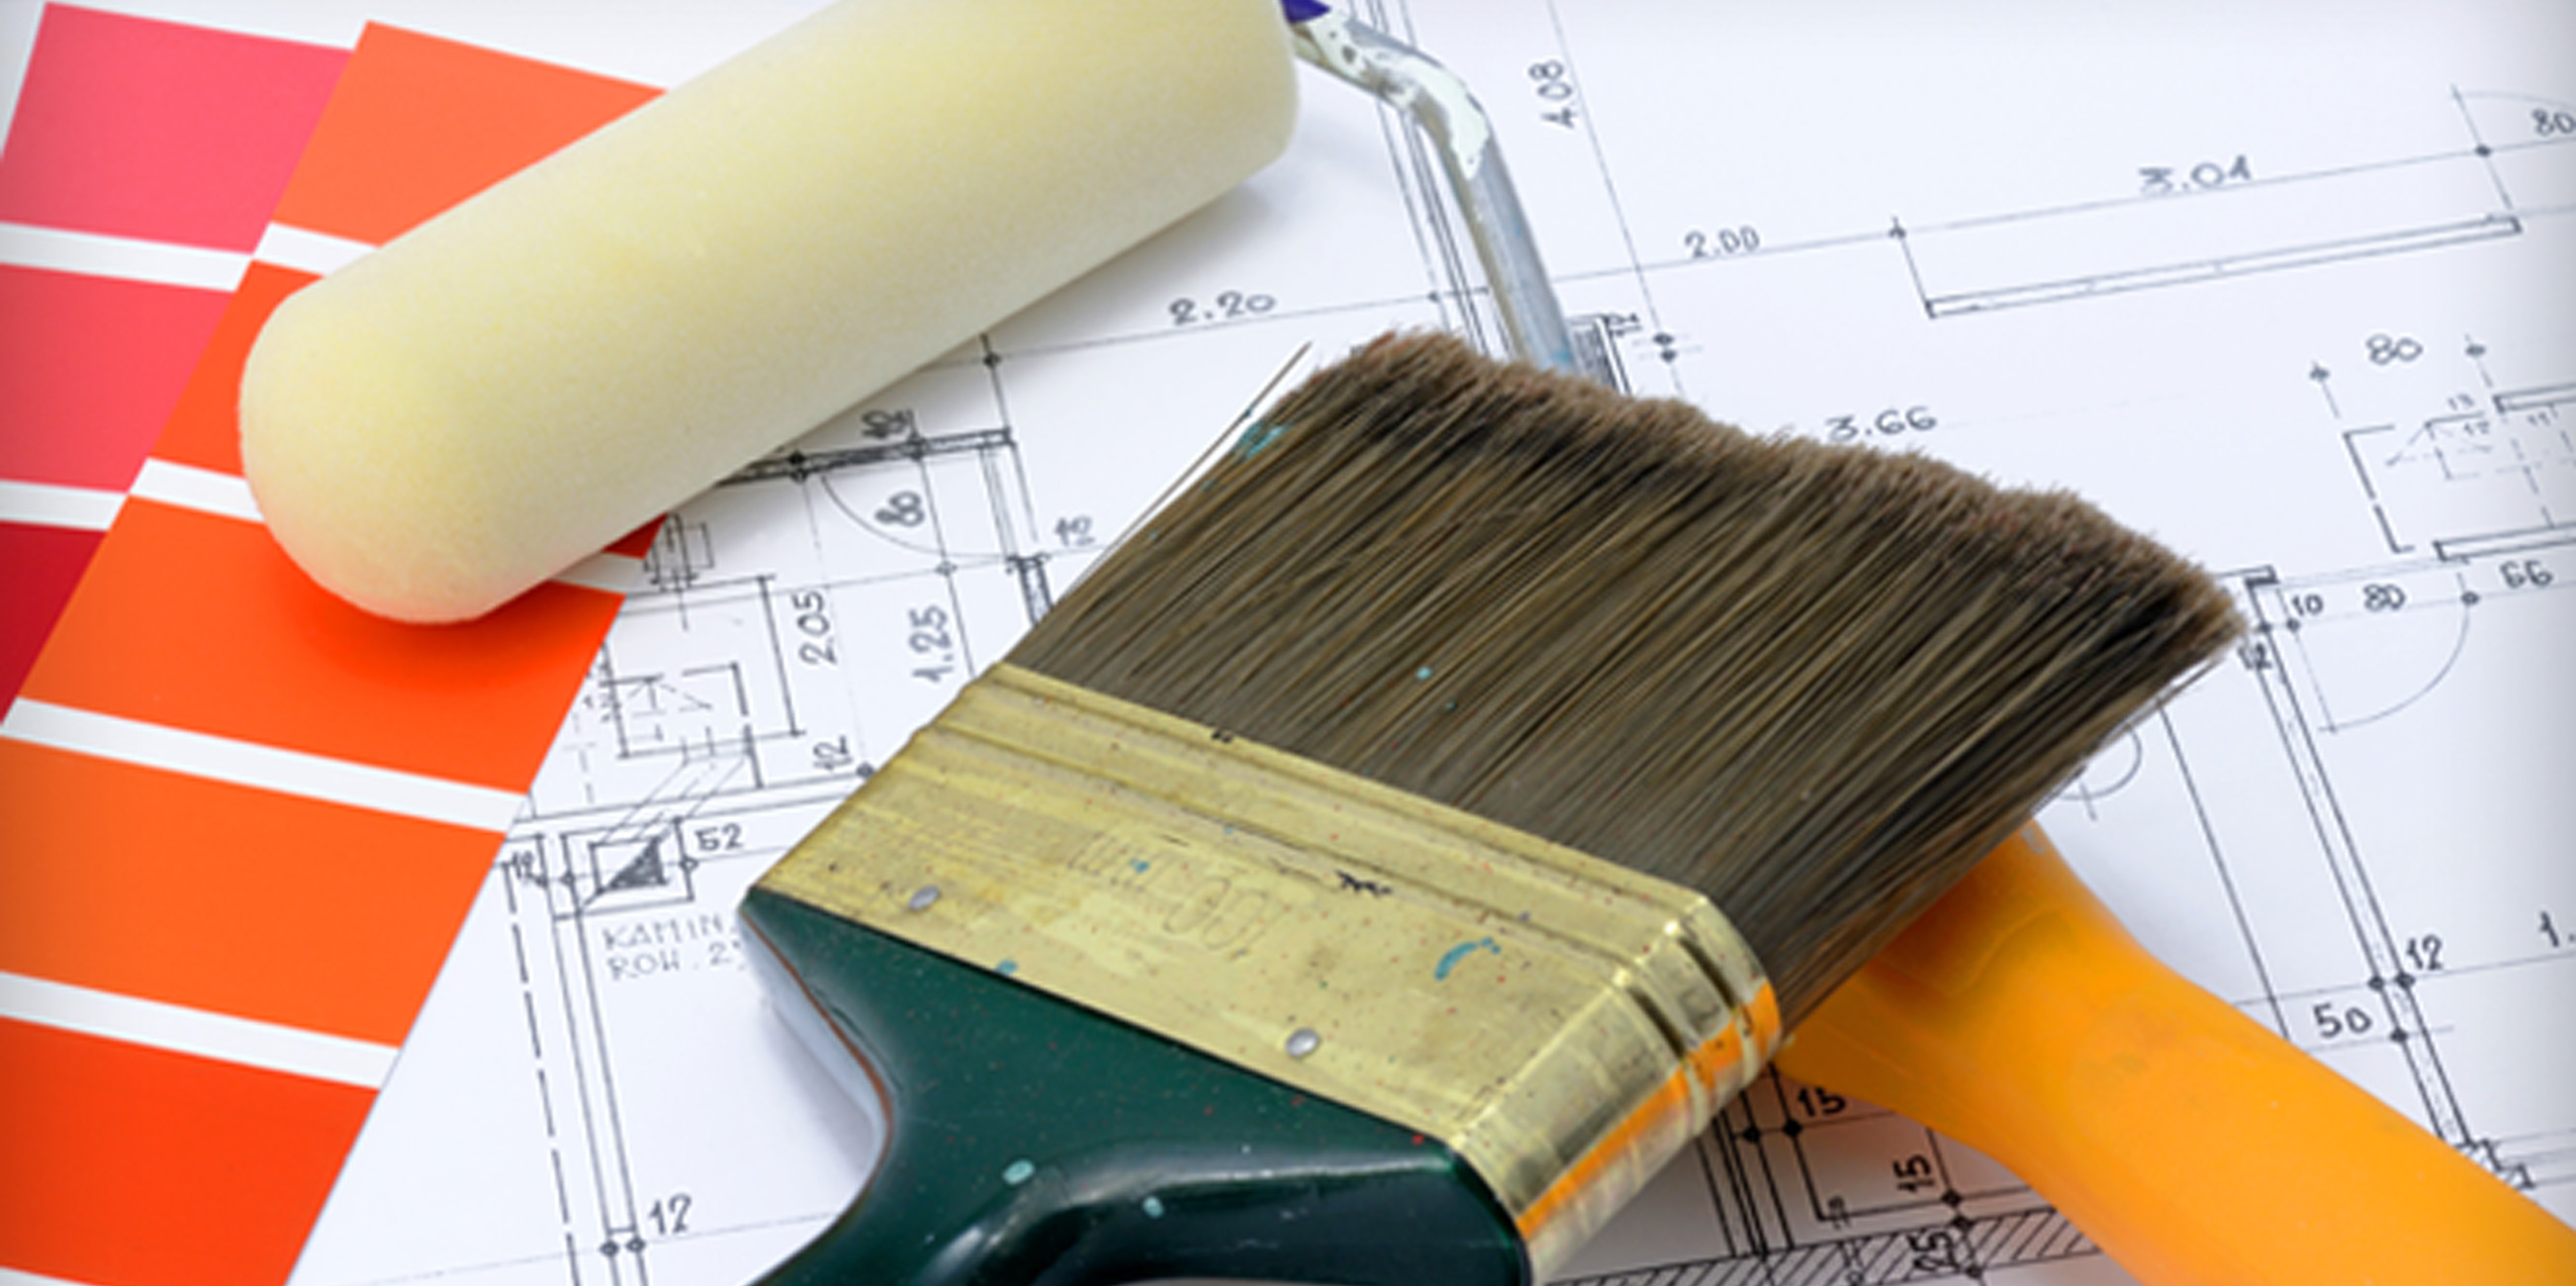 The Paint Place Do It Yourself Archives Learn More At Help Com 10 Touchups That Can Sell Your Home